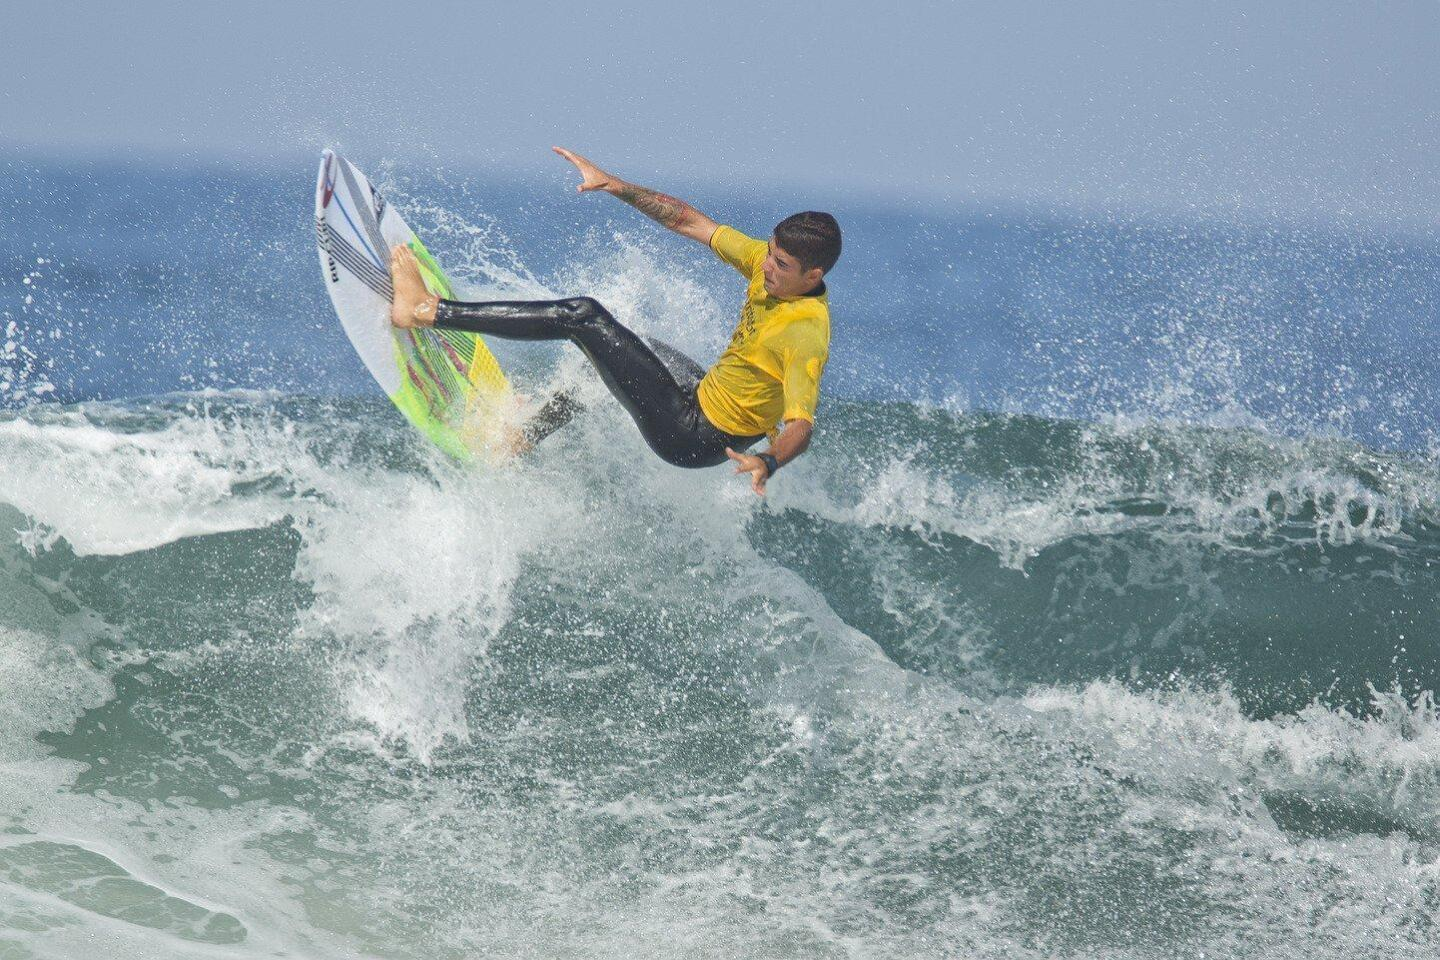 Surfers compete at the 2018 Switchfoot Bro-Am